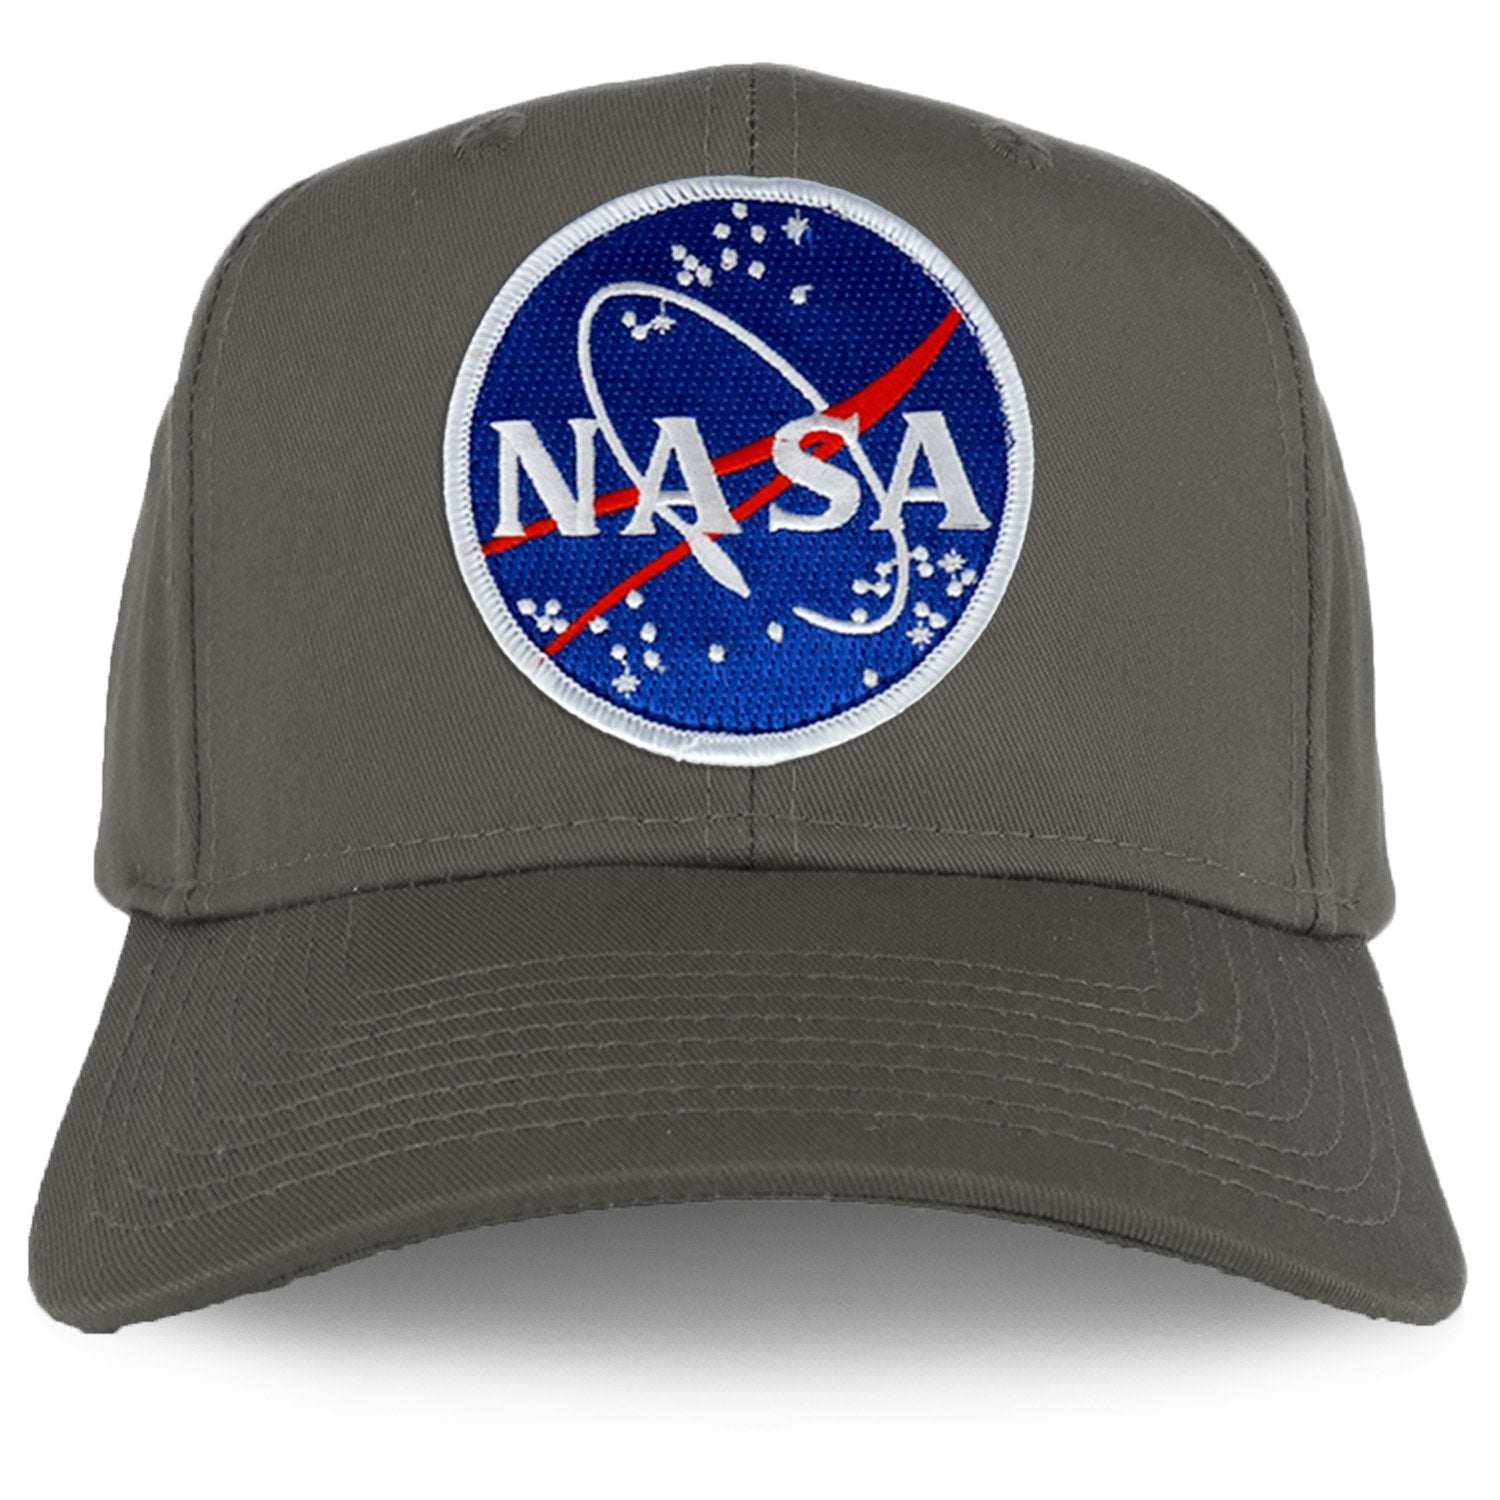 f1e538248582f Armycrew XXL Oversize NASA Meatball Logo Iron On Patch Solid Baseball Cap